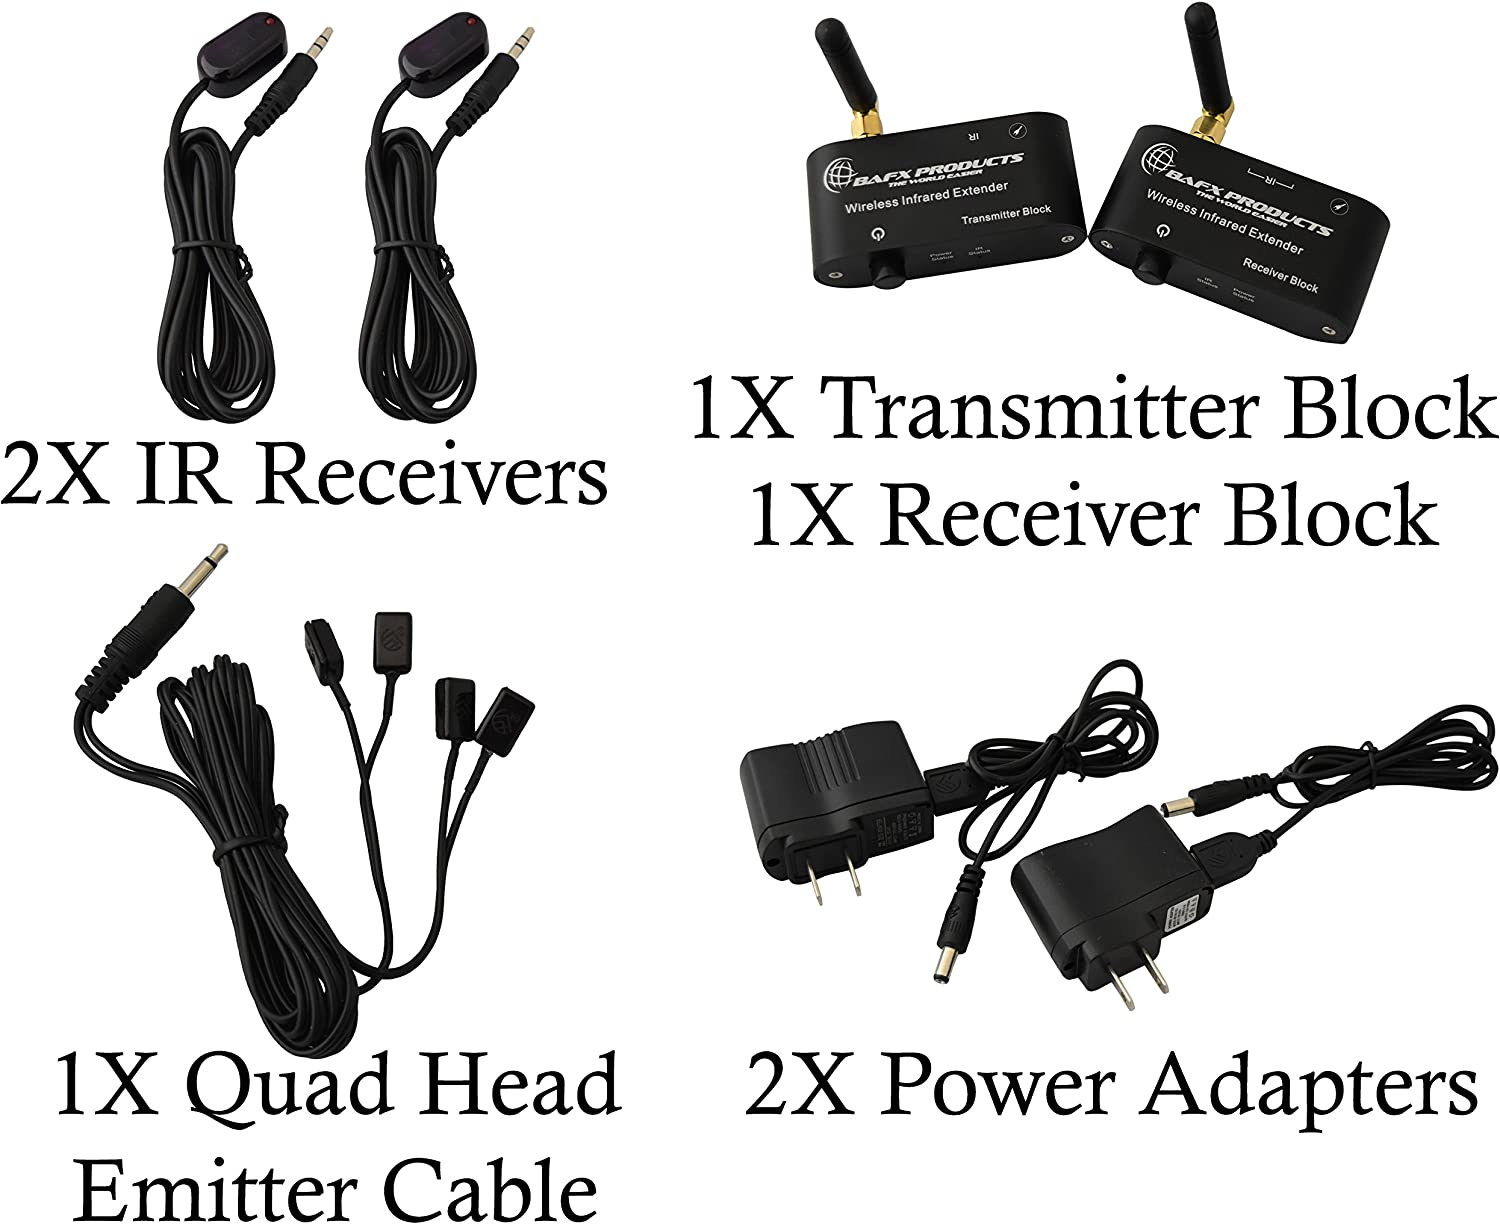 RF Wireless IR Repeater Kit//Infrared Remote Control Extender Kit; Hide Your Cable Box Out of Sight; No Wires to Run BAFX Products